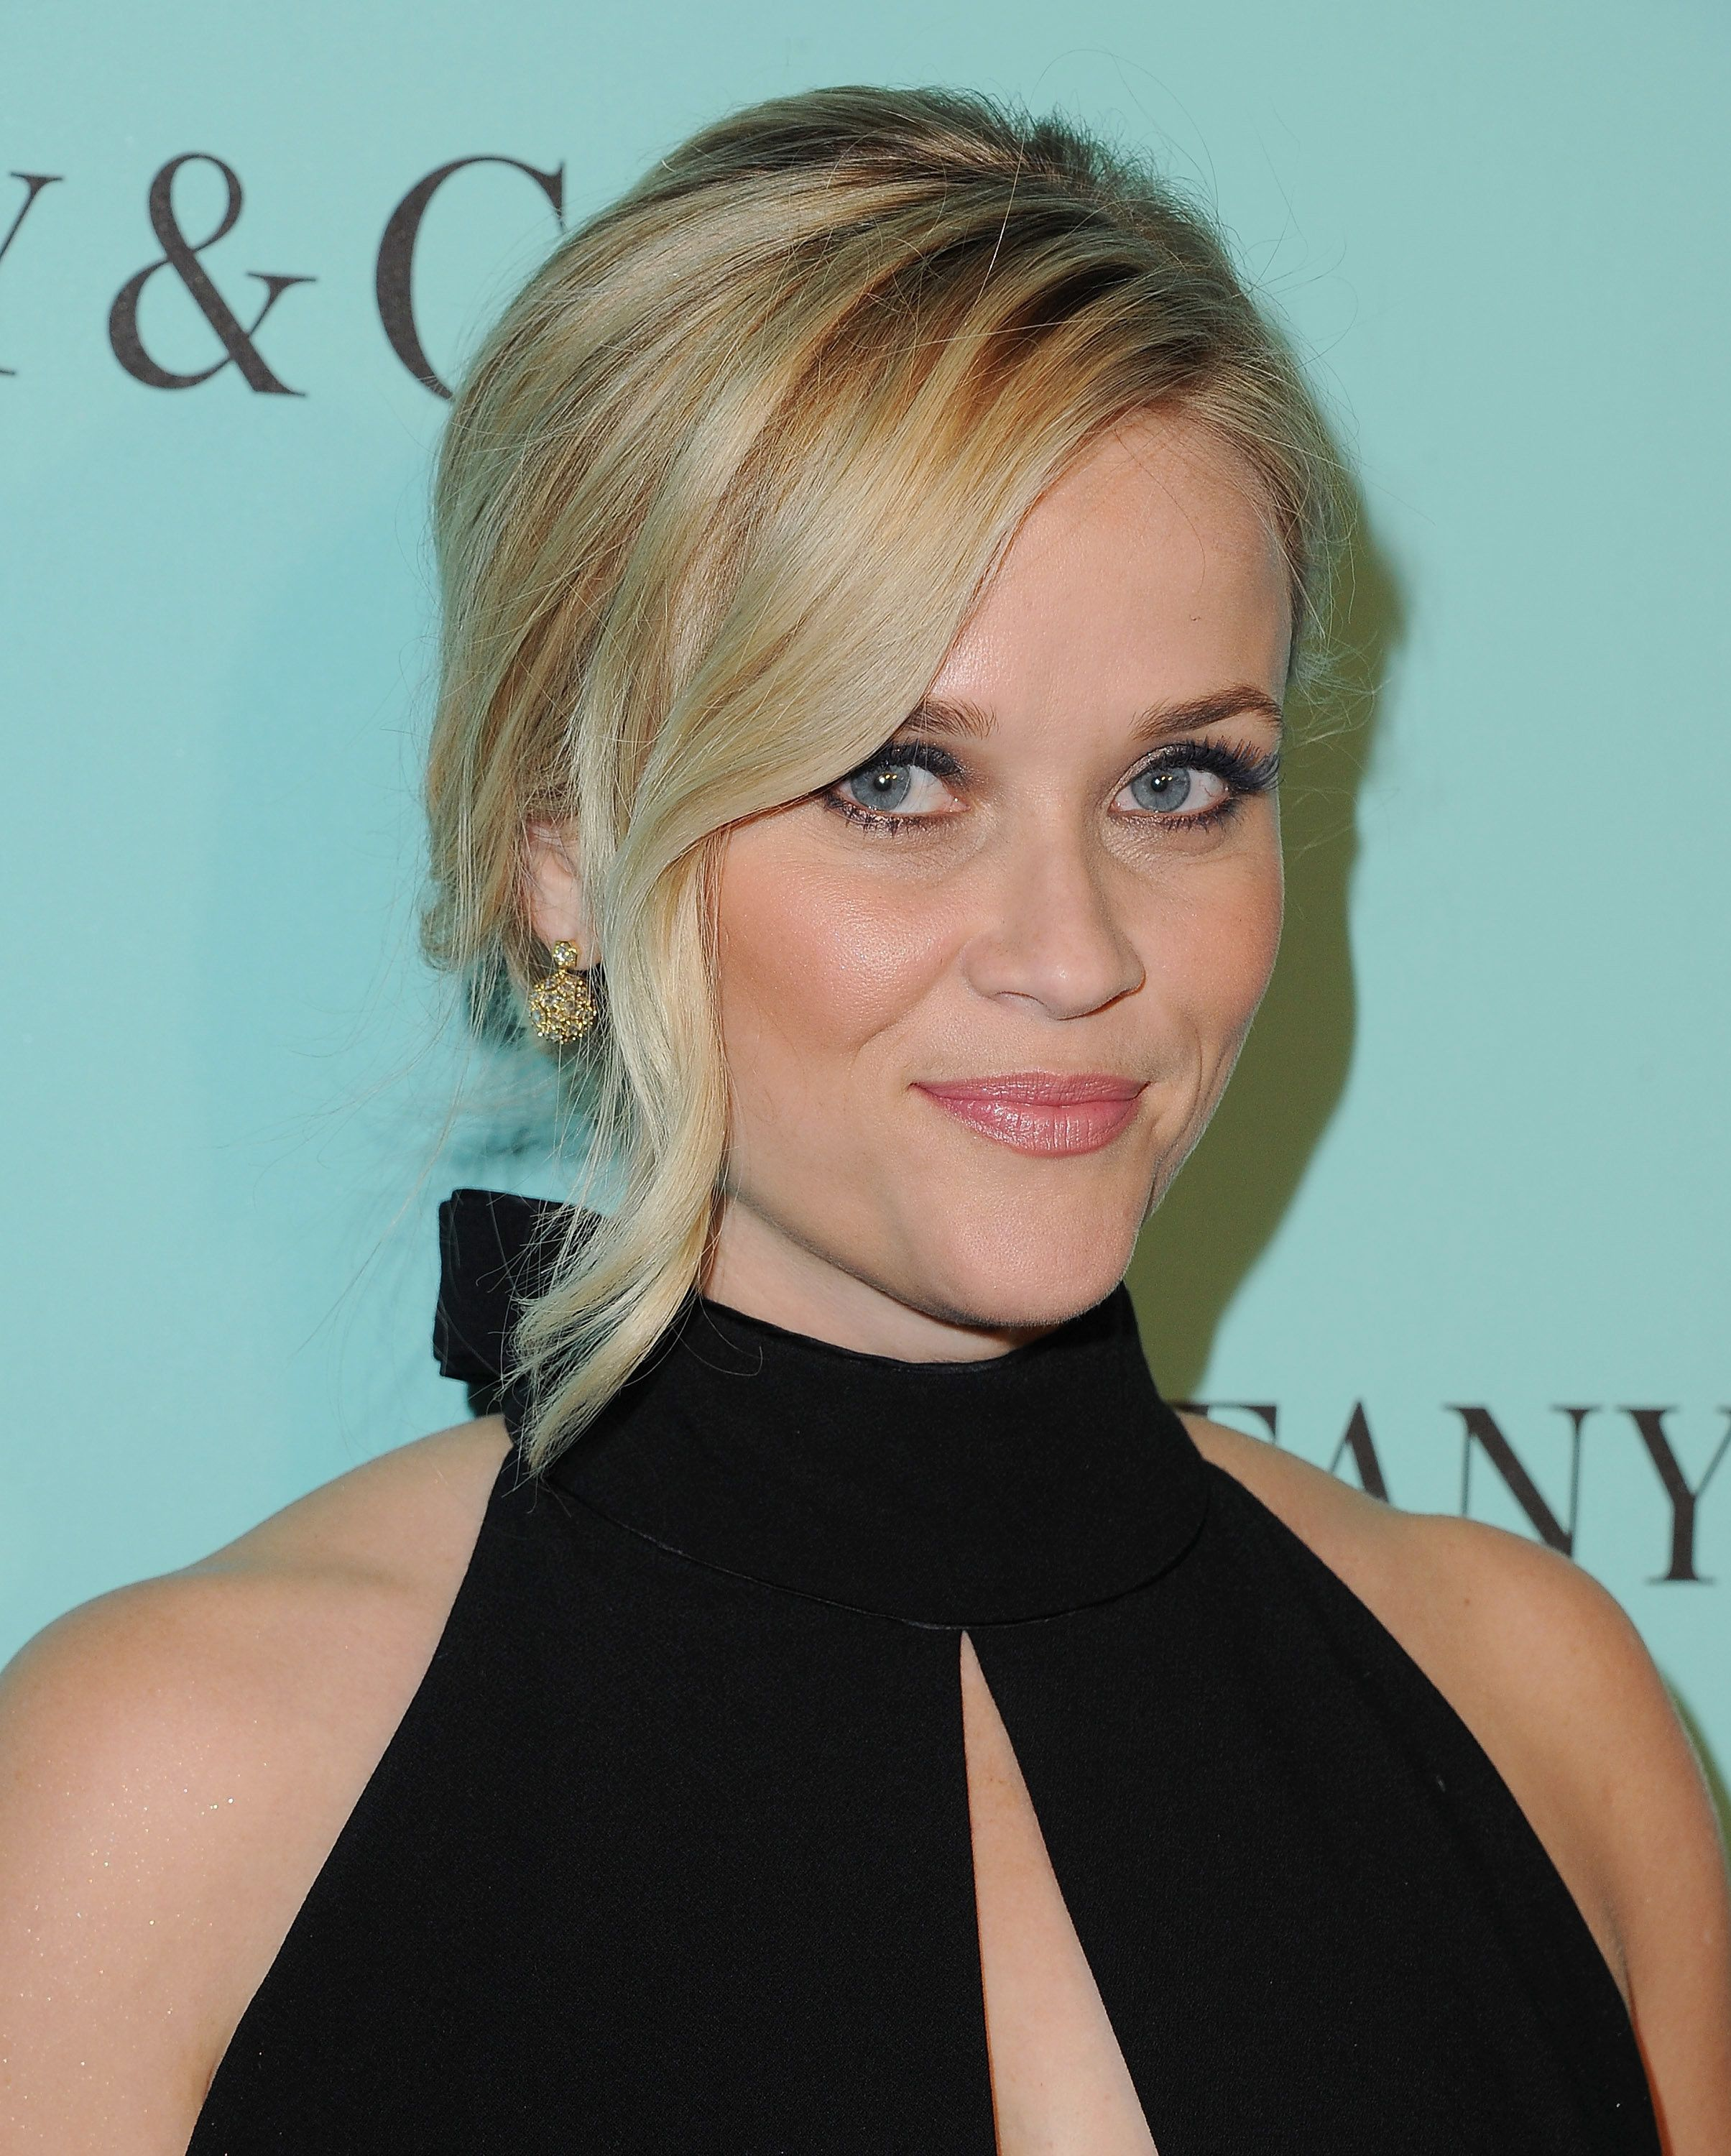 BEVERLY HILLS, CA - OCTOBER 13:  Actress Reese Witherspoon arrives at Tiffany And Co. Celebrates Unveiling Of Renovated Beverly Hills Store at Tiffany & Co. on October 13, 2016 in Beverly Hills, California.  (Photo by Jon Kopaloff/FilmMagic)